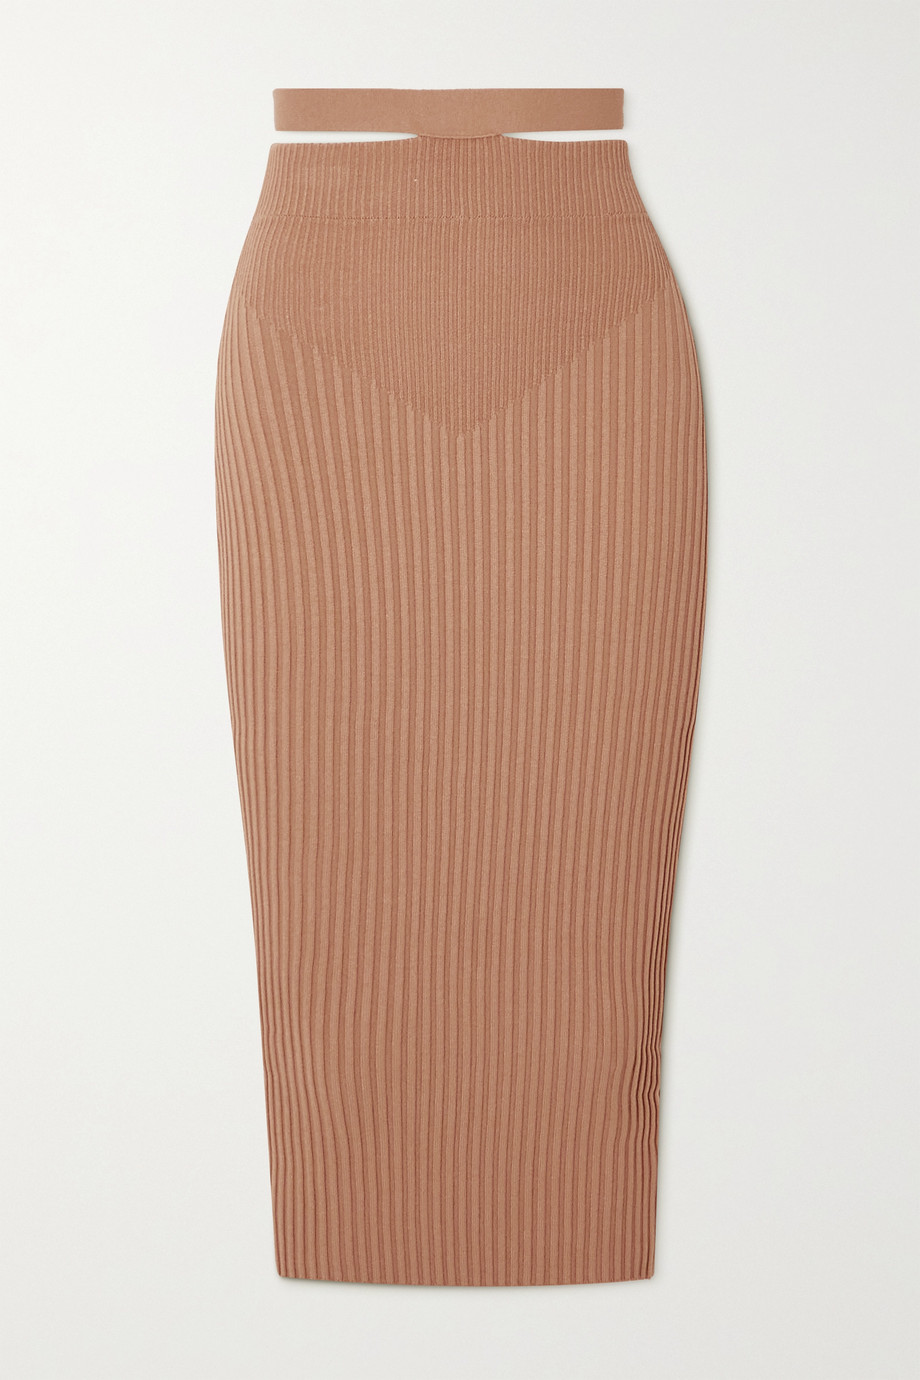 ANDREA ADAMO Cutout ribbed-knit midi skirt